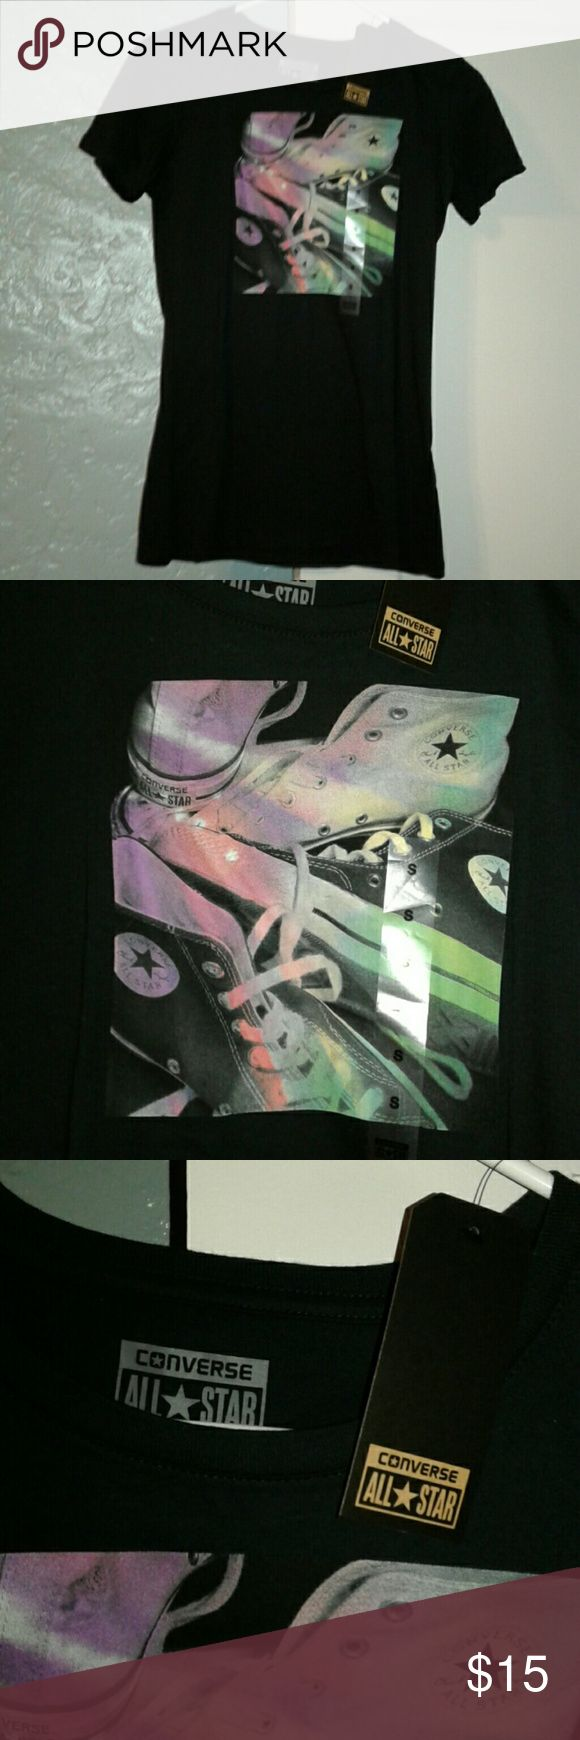 NWT ladies converse tee NWT black with bright multi colors on picture ladies converse tee. Converse Tops